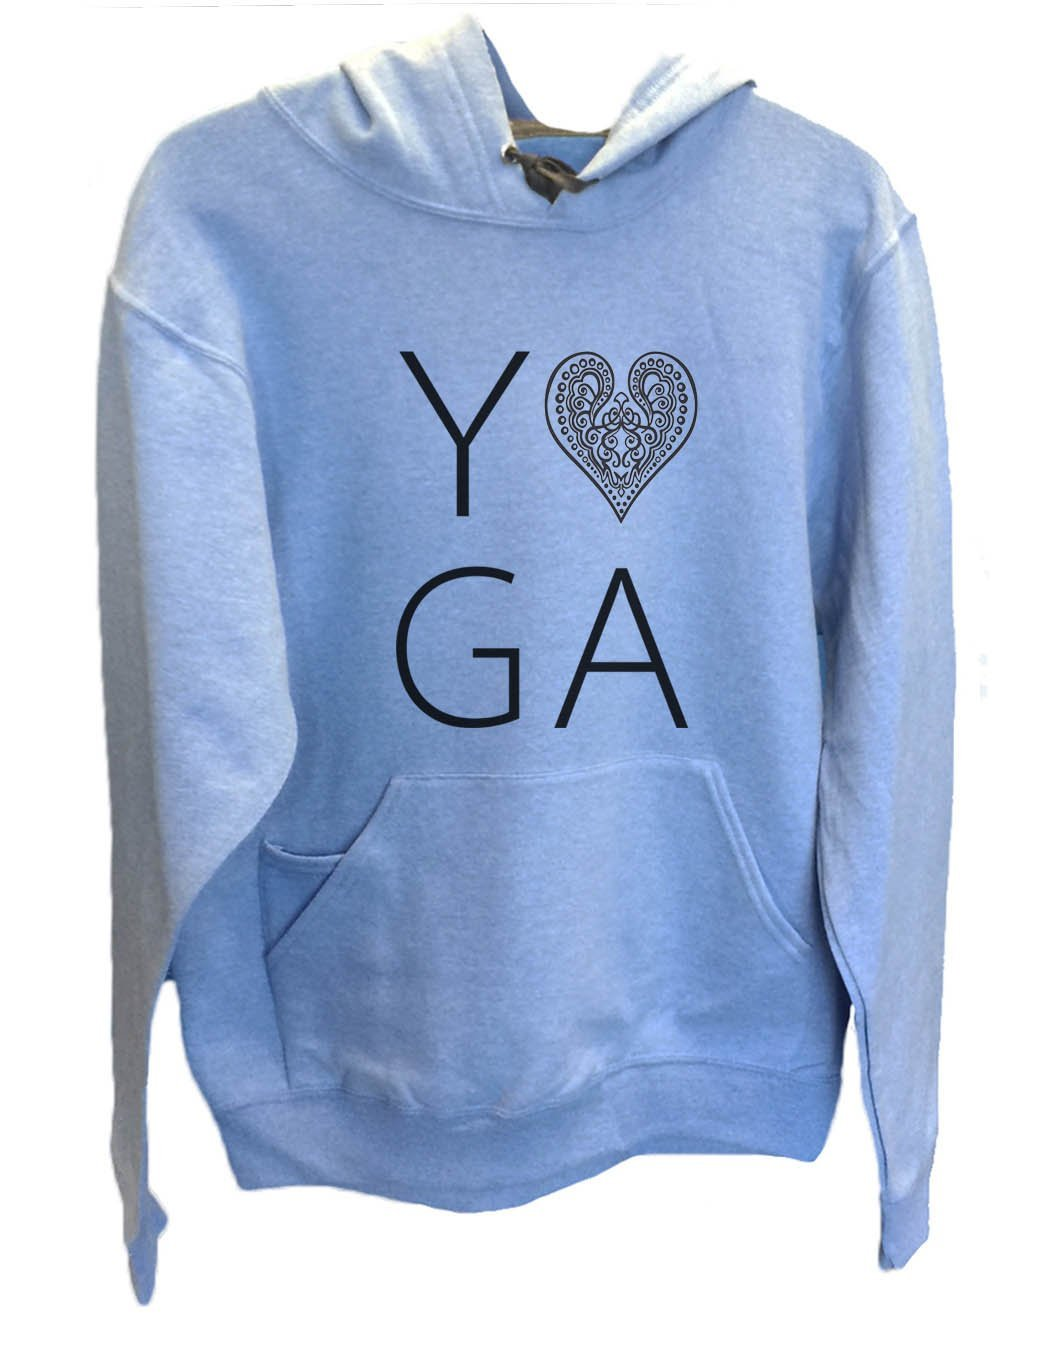 UNISEX HOODIE - Heart I Love Yoga - FUNNY MENS AND WOMENS HOODED SWEATSHIRTS - 2183 Funny Shirt Small / North Carolina Blue